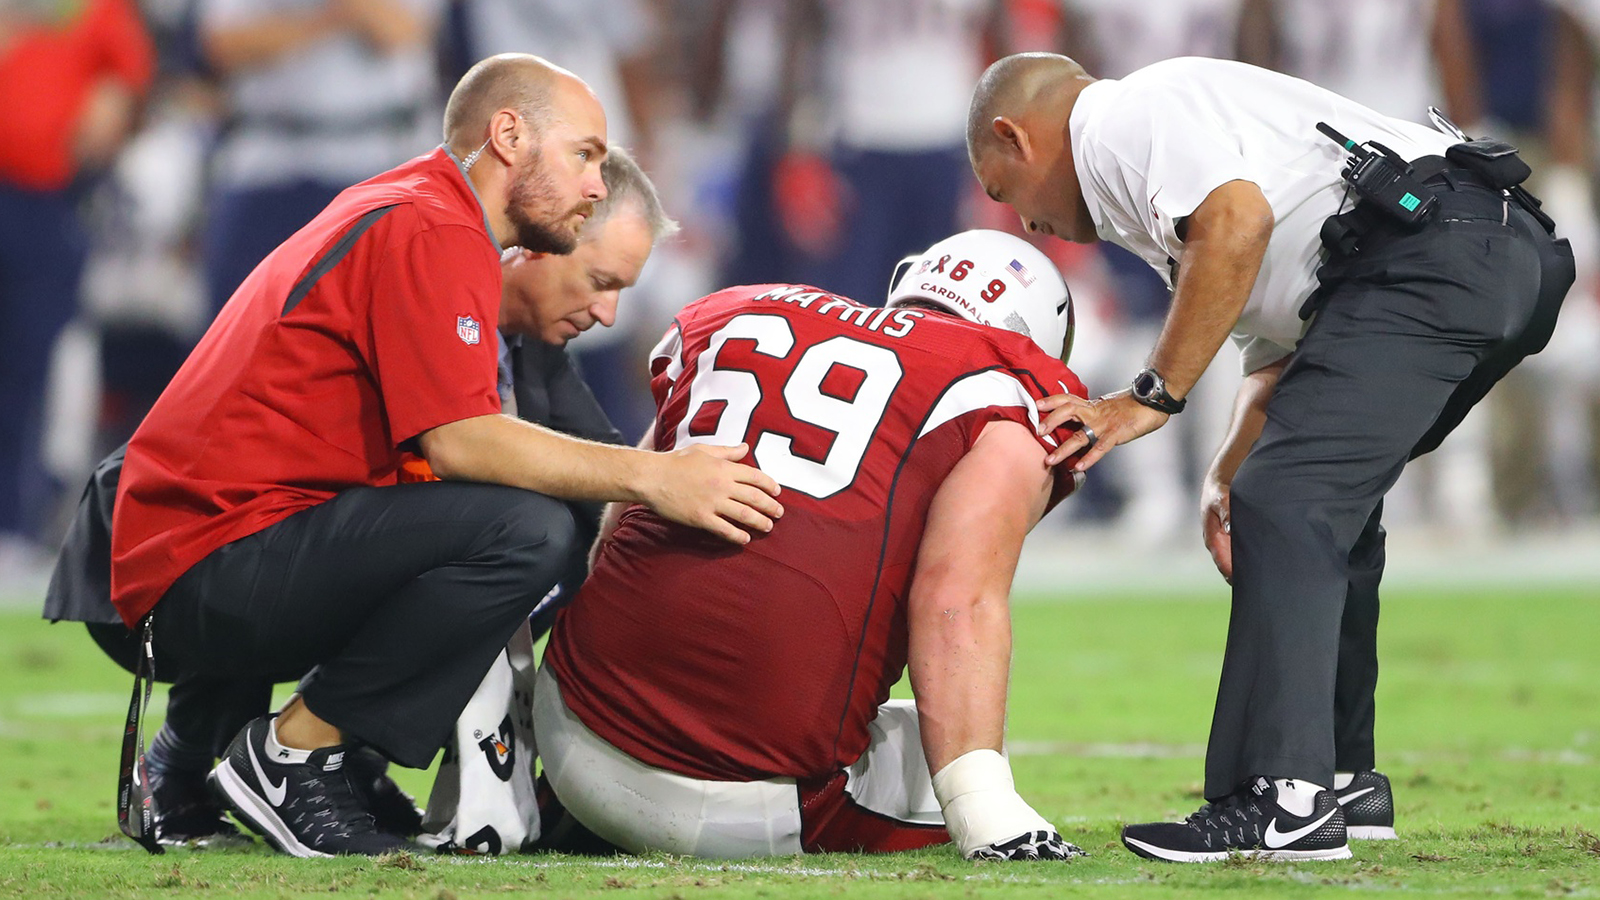 Cardinals guard Mathis to miss rest of season